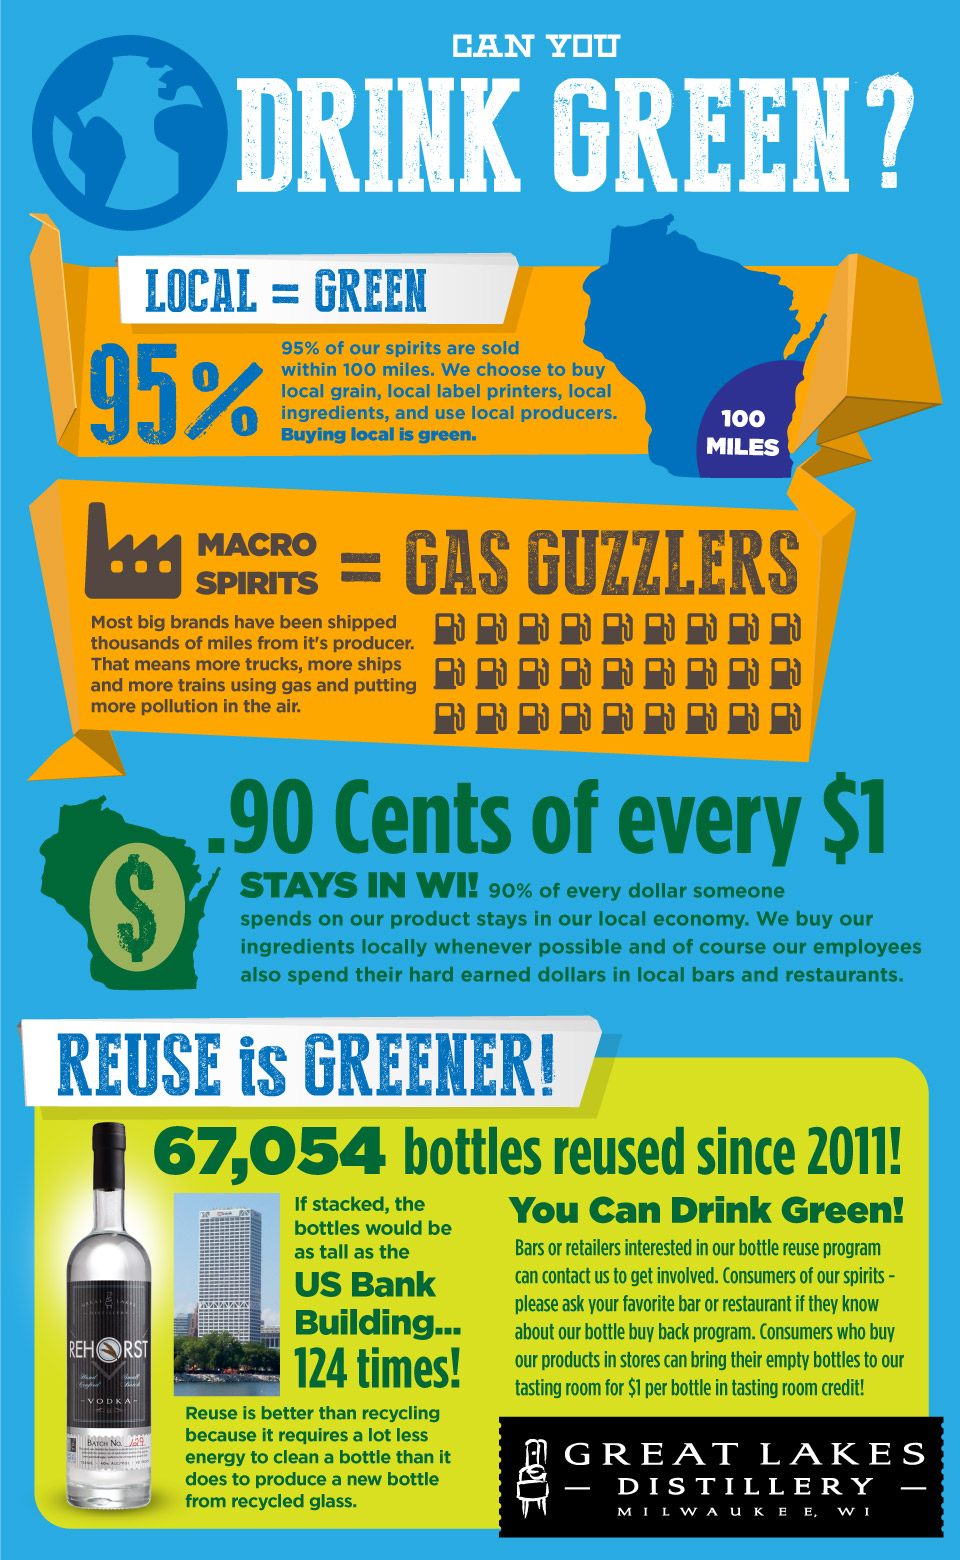 Informational graphic showing how Great Lakes Distillery uses green programs to help the environment and have a smaller carbon footprint.